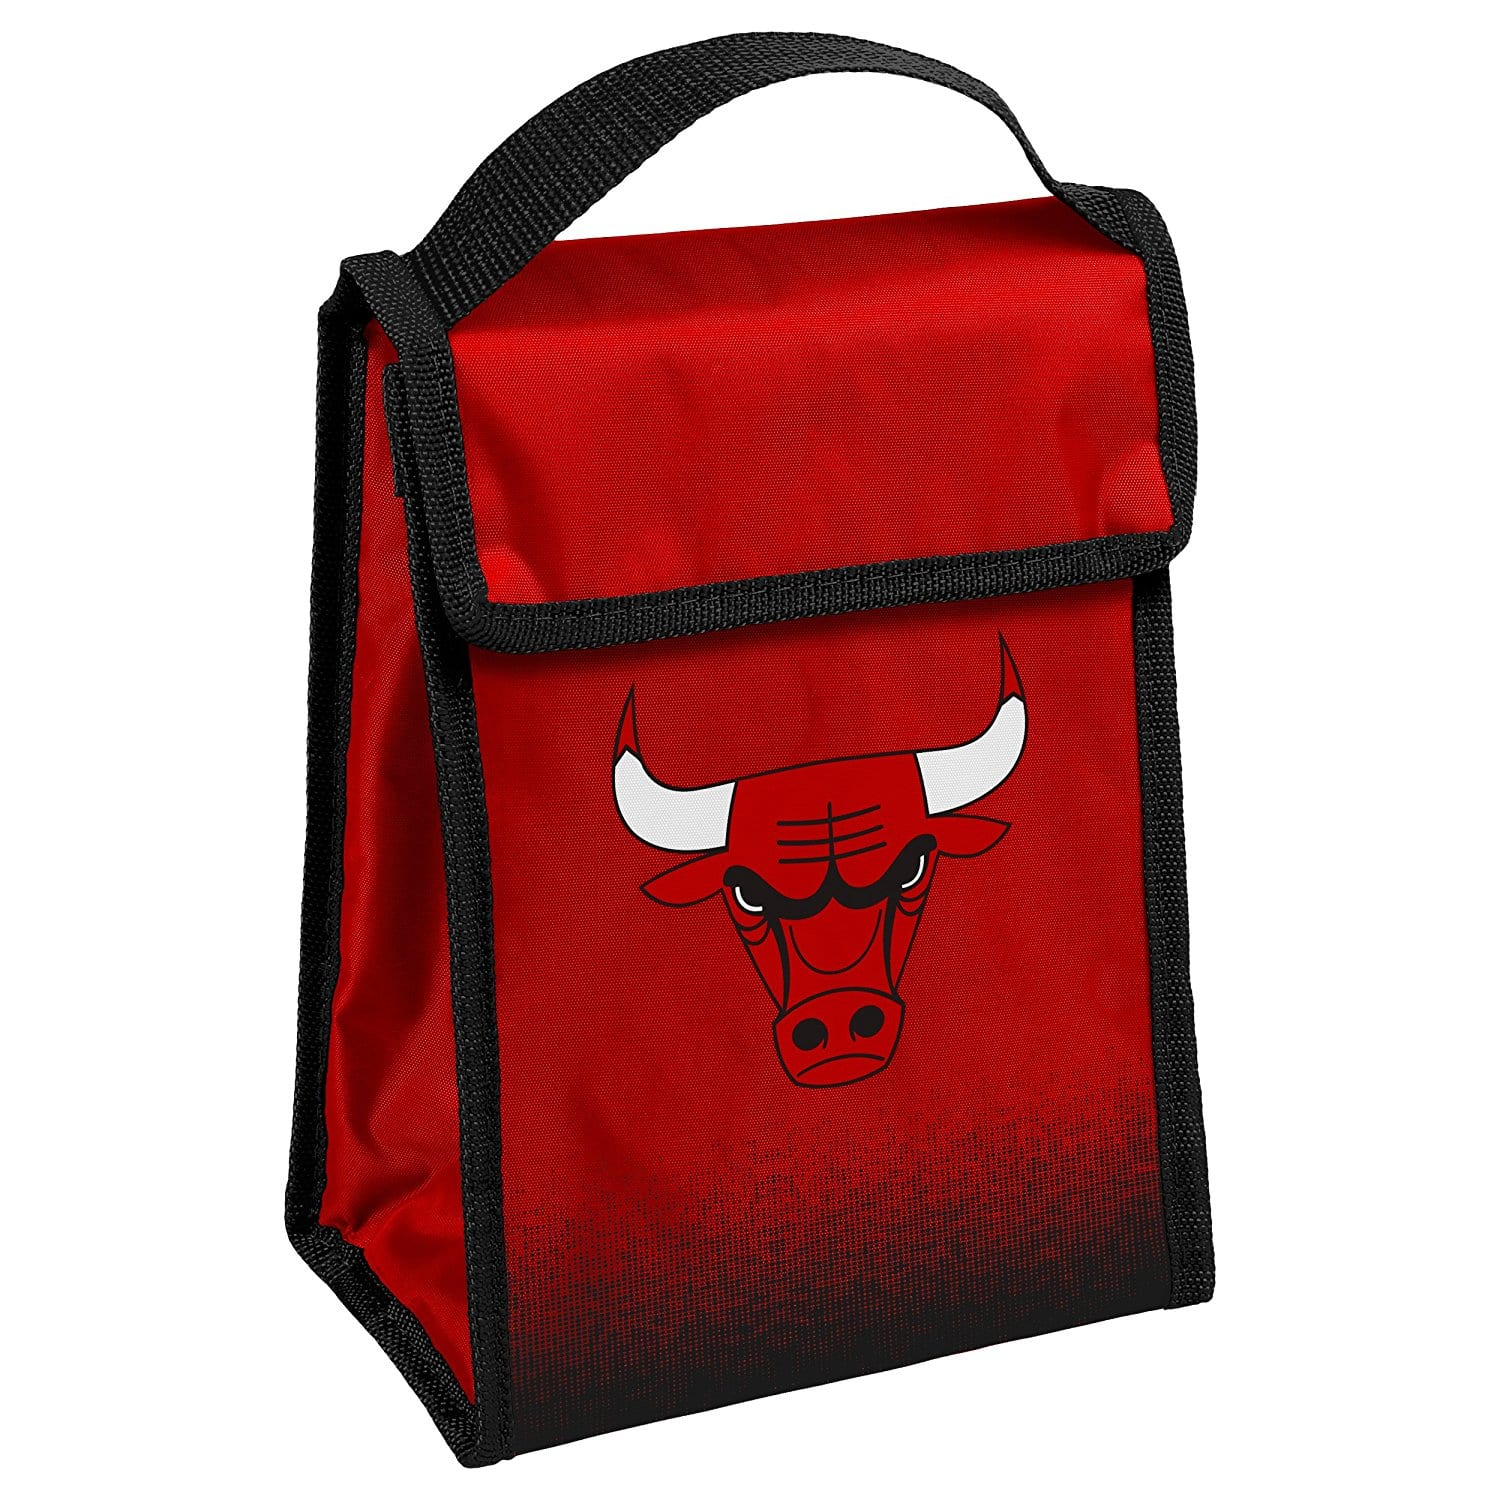 100% Licensed Lunch Bags & 6-Pack Coolers from $2.99 + FS w/Prime (NFL, NCAA, NBA, MLB, NHL, MLS)